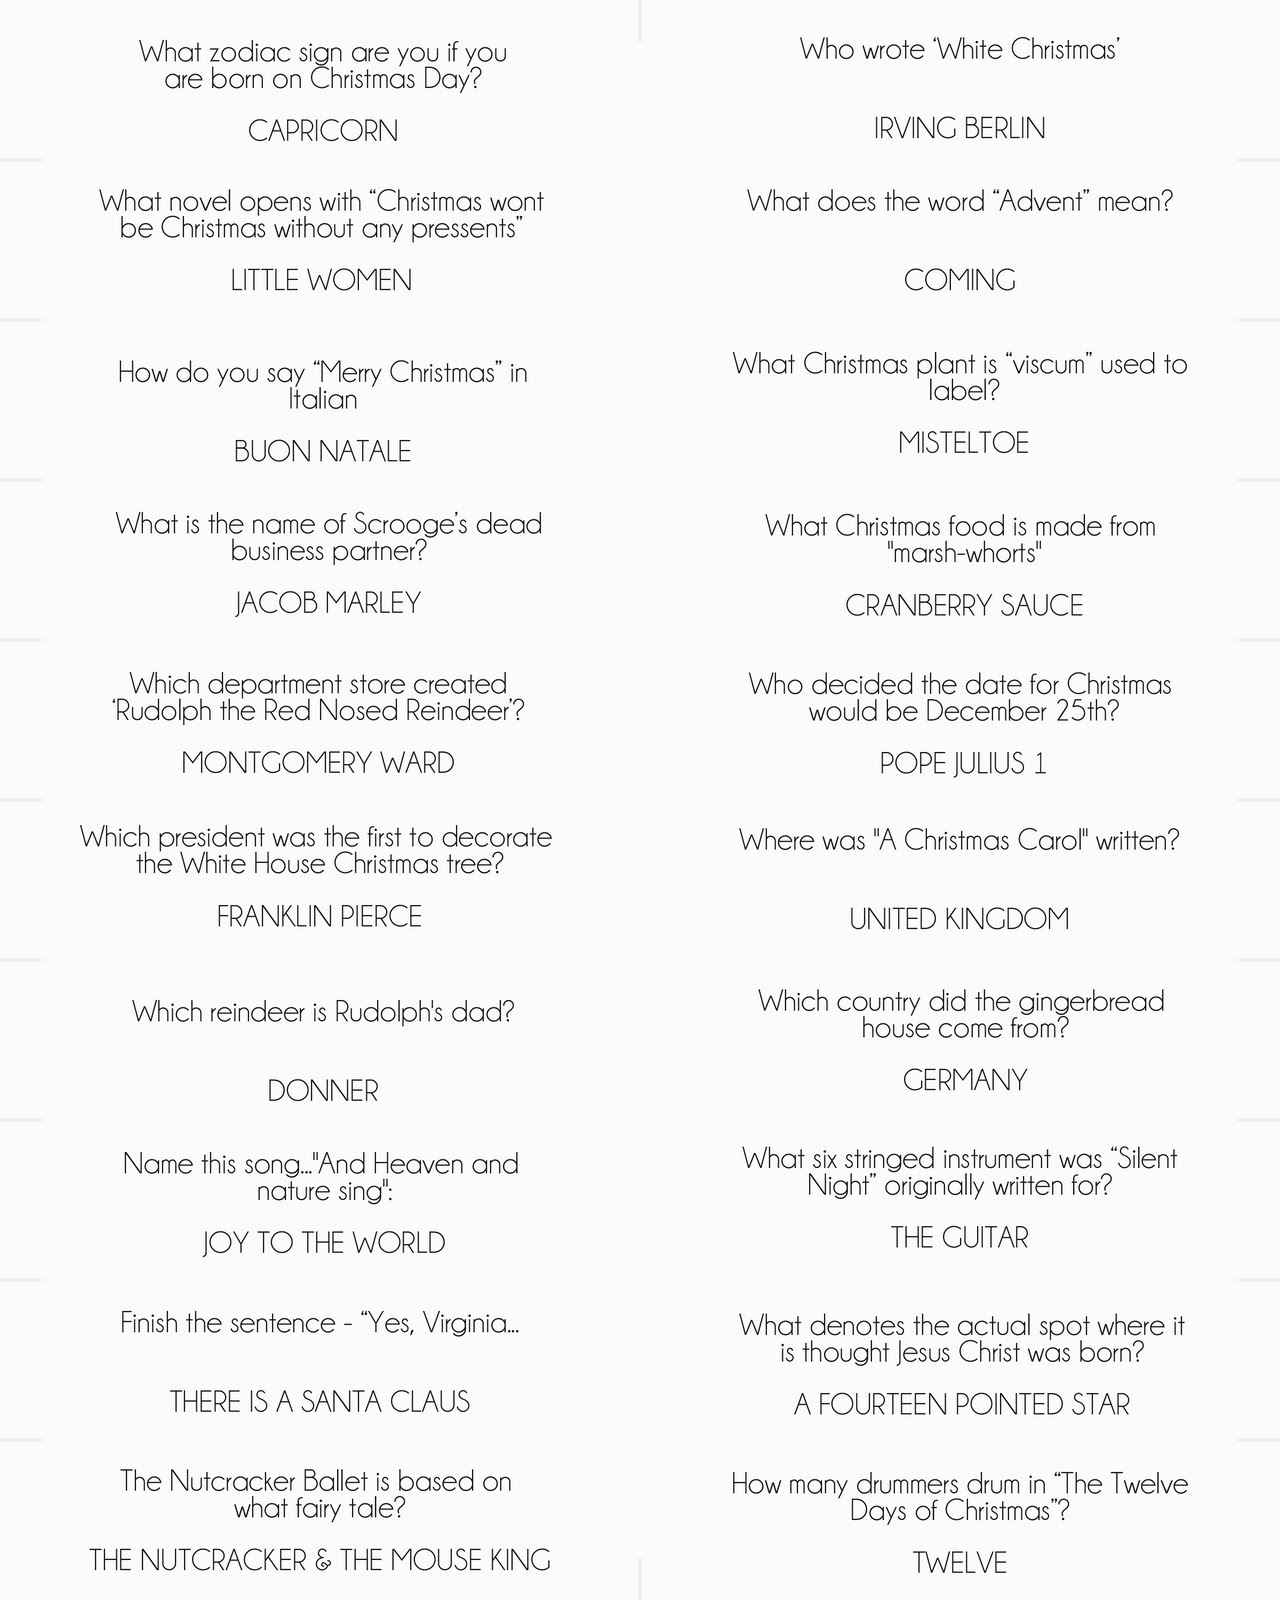 40 christmas trivia questions and answers robynsonlineworld MEMES